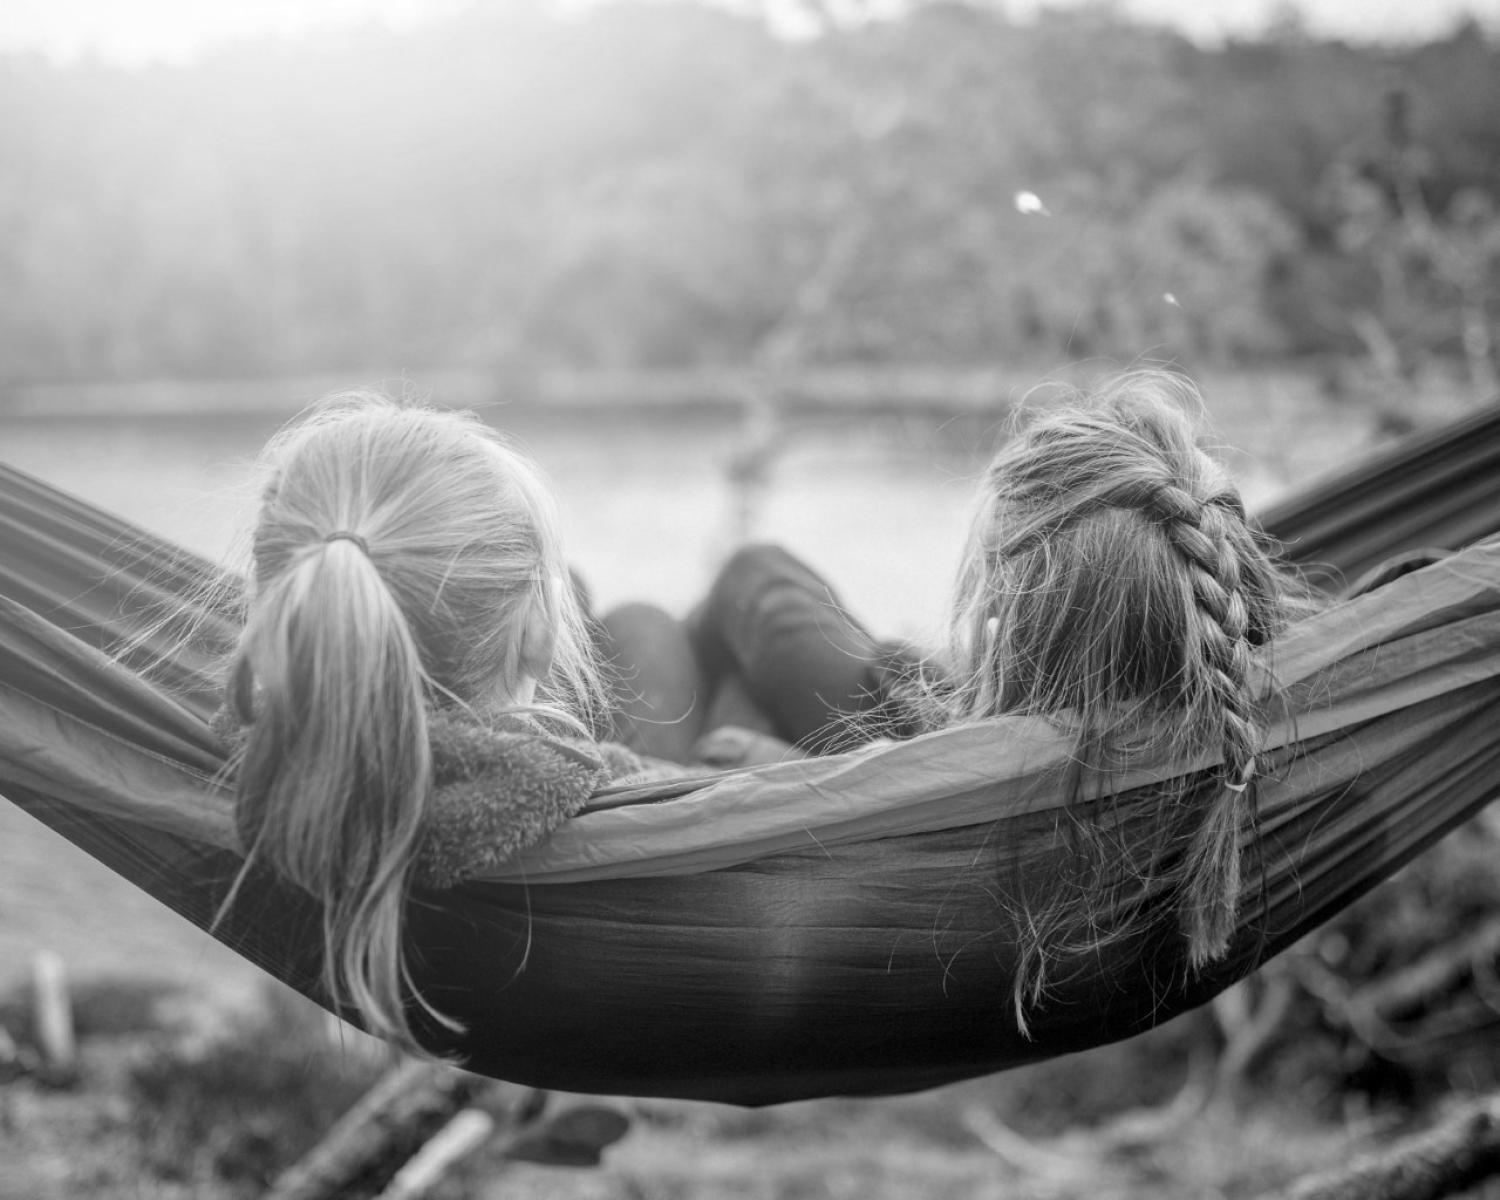 Back of two adolescent girls heads swinging in a hammock by a lake.